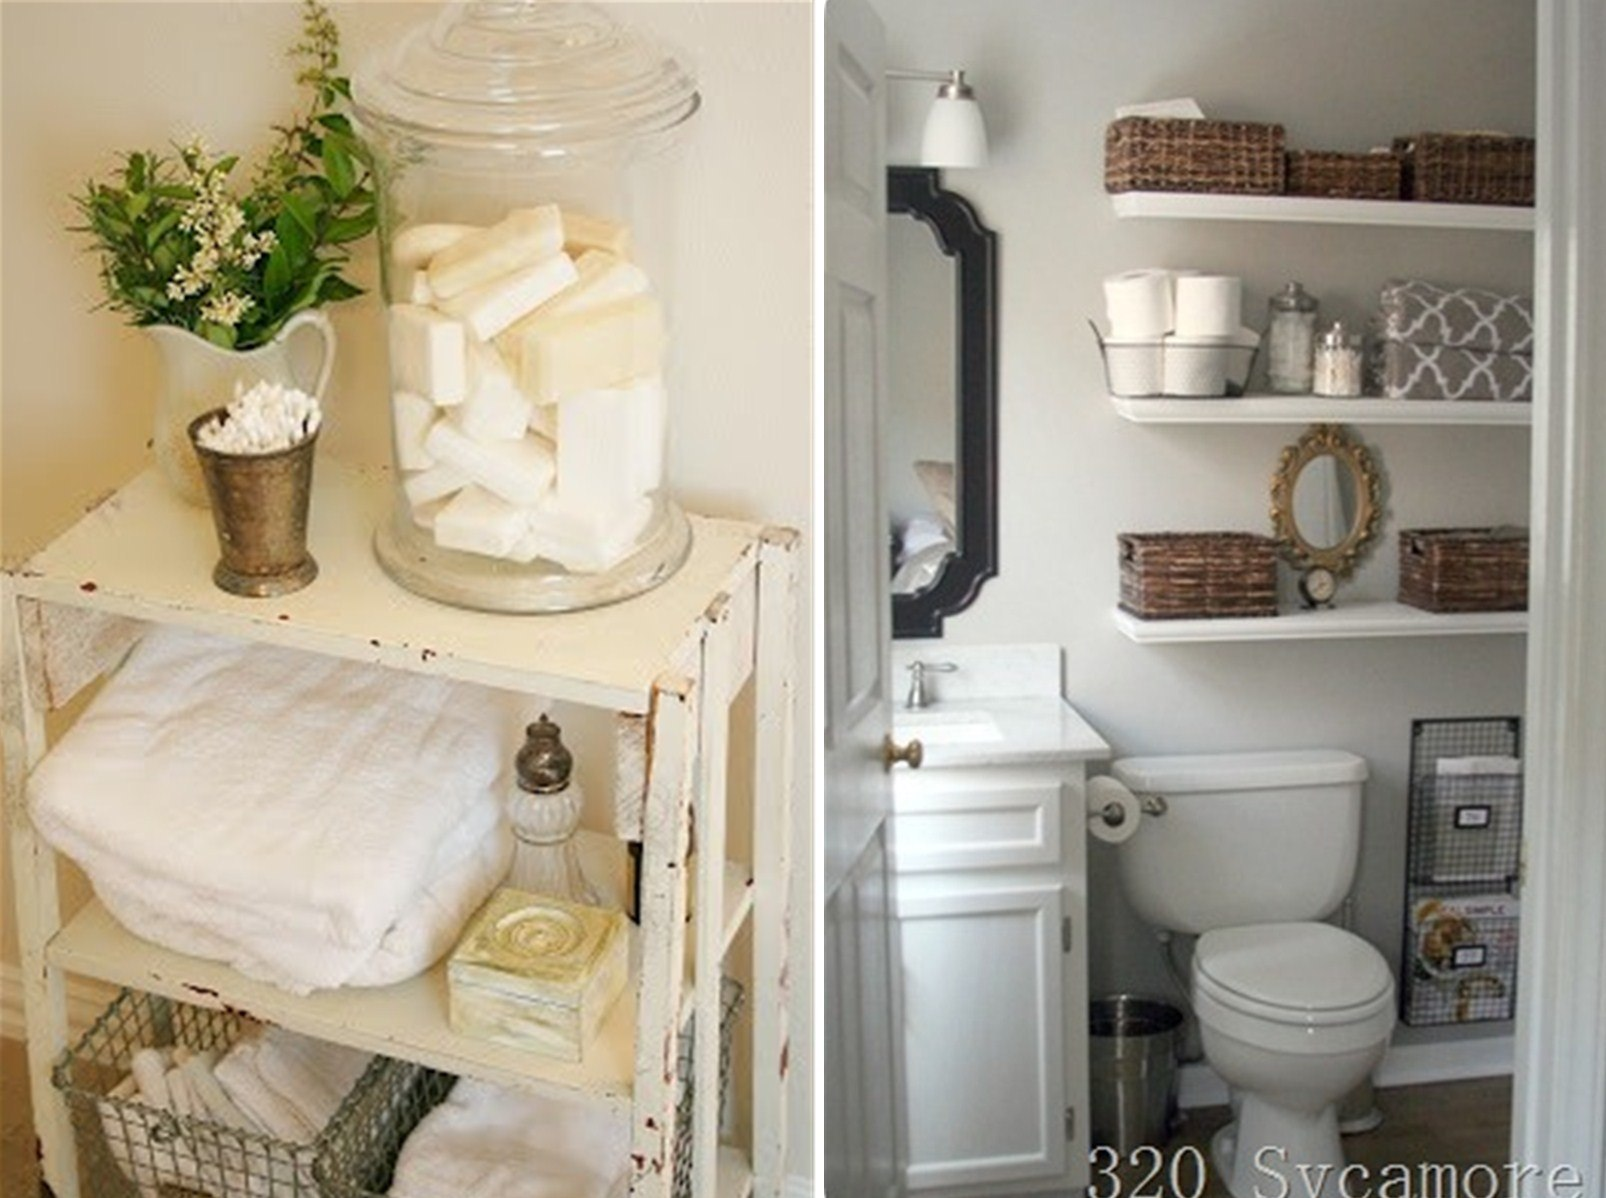 Ordinaire Add Glamour With Small Vintage Bathroom Ideas (16)